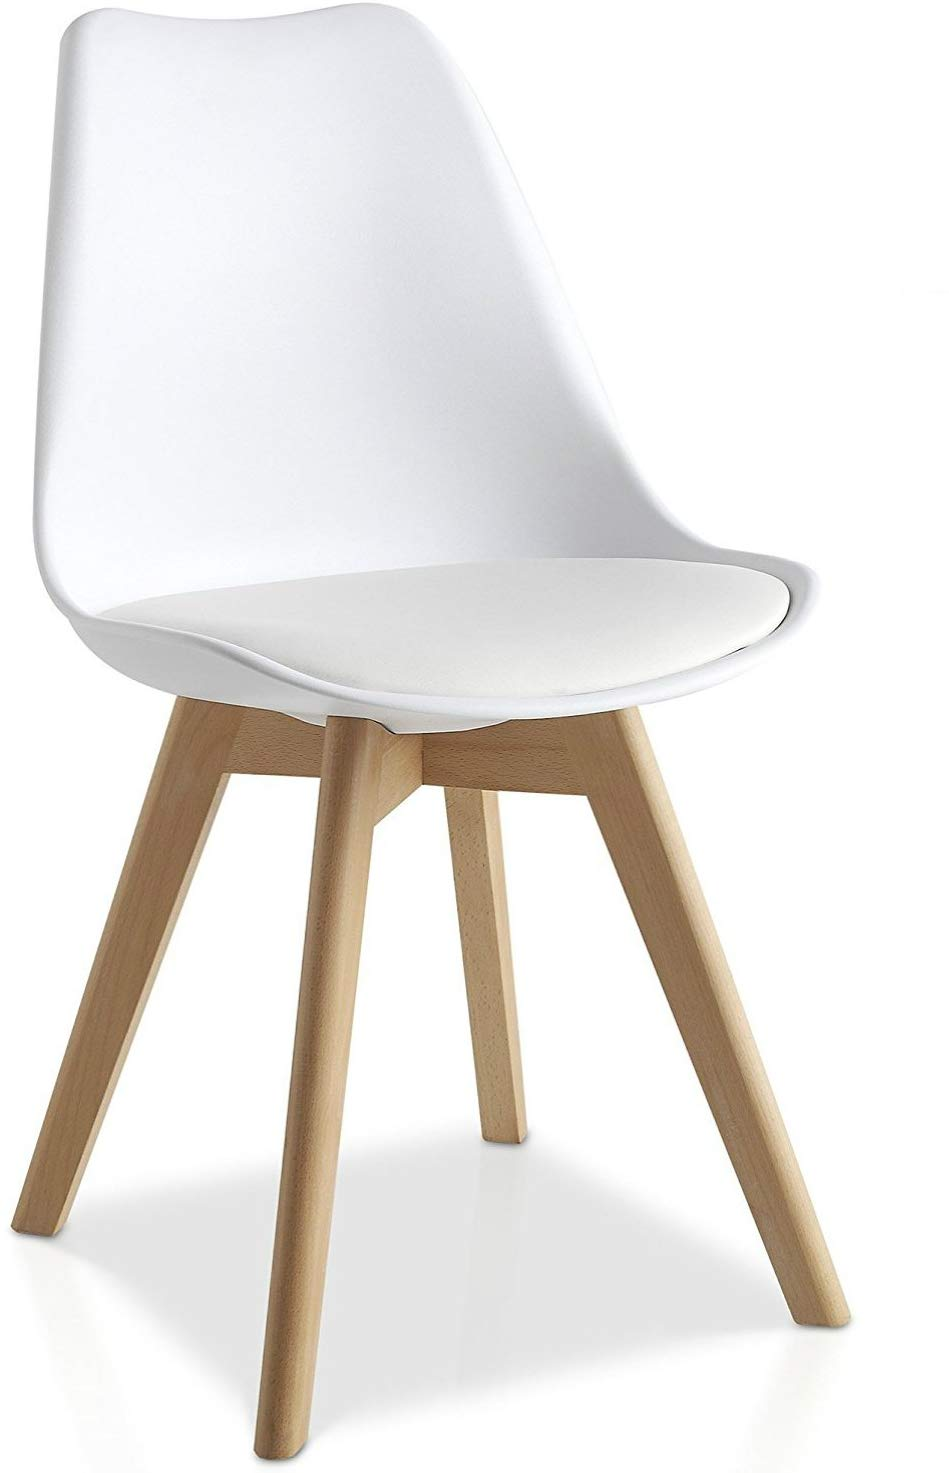 MMilo Tulip Pyramid Dining Chairs With Beech Legs, White ...